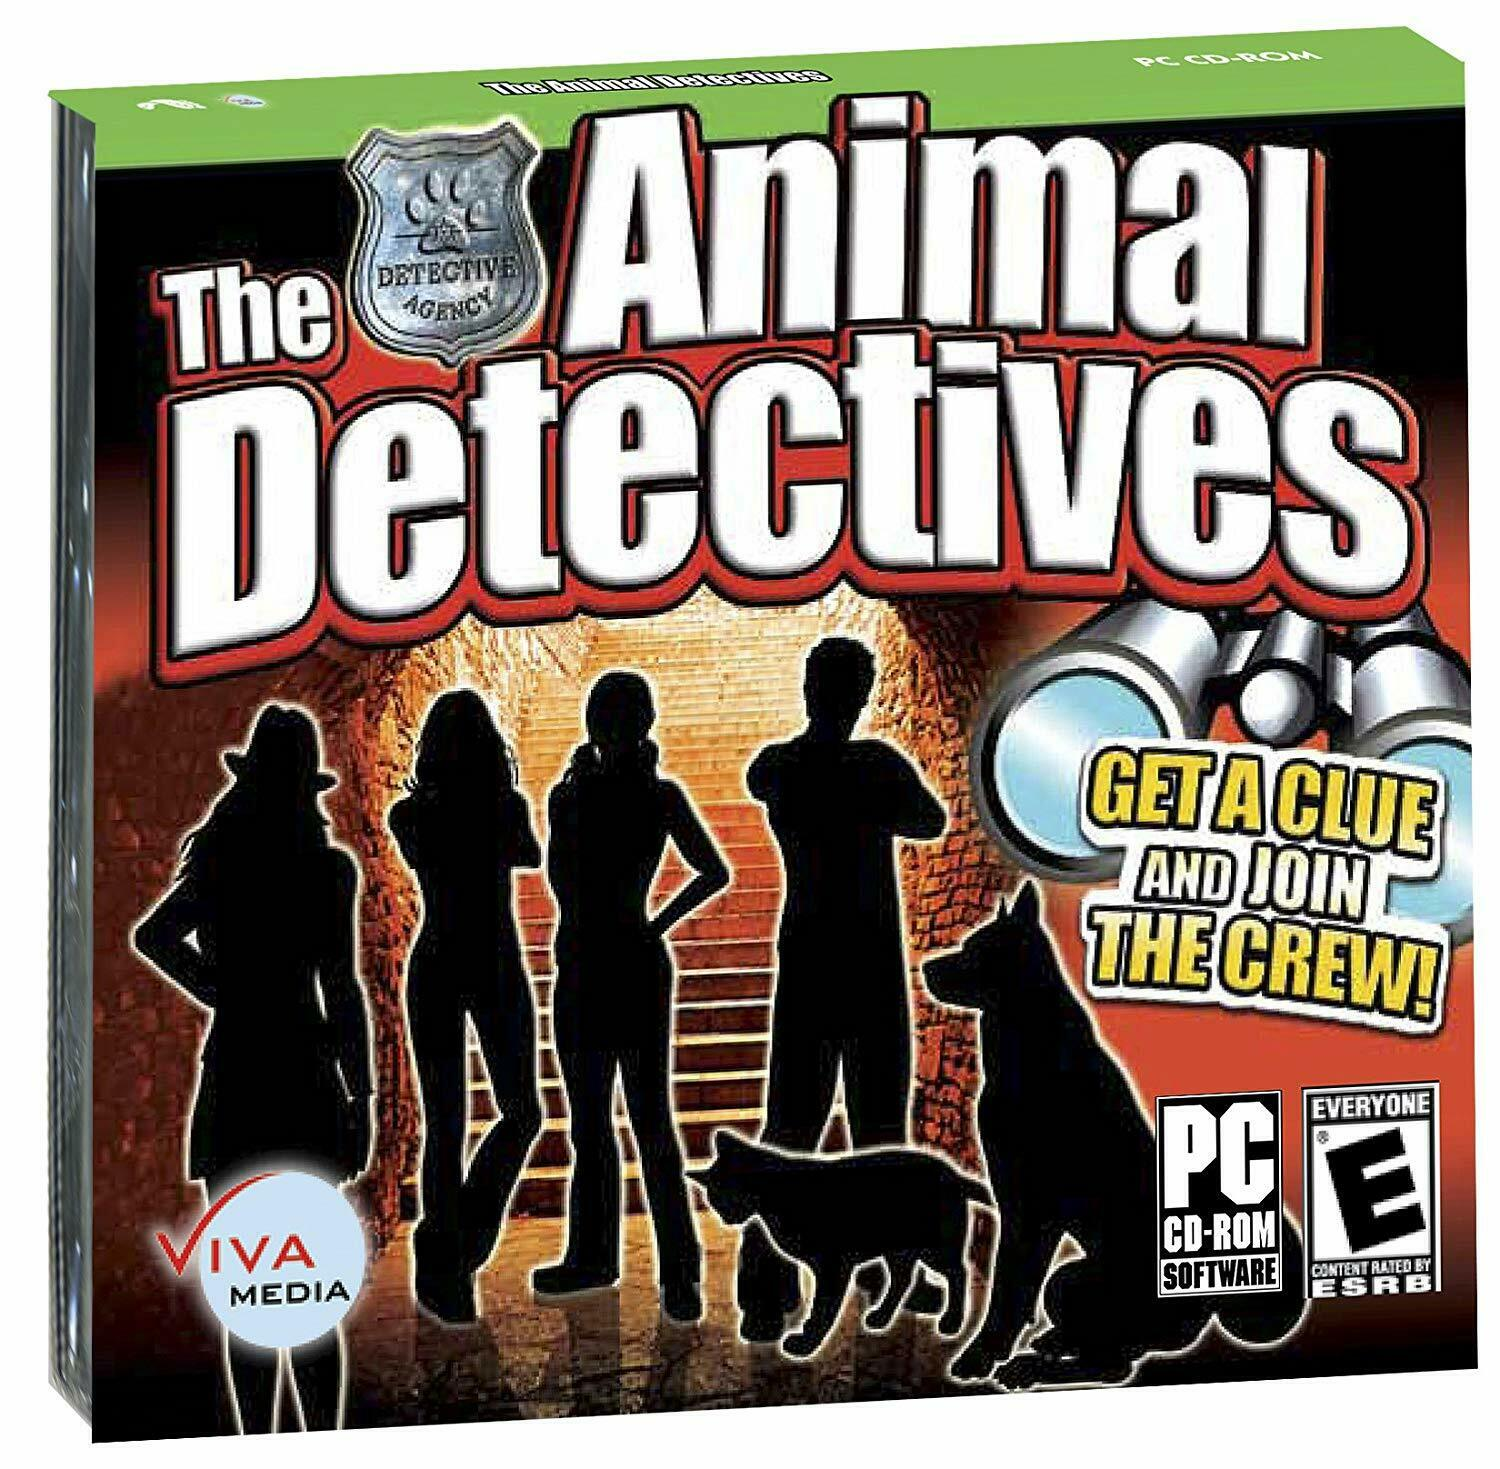 Computer Games - The Animal Detectives PC Games Windows 10 8 7 XP Computer mystery adventure